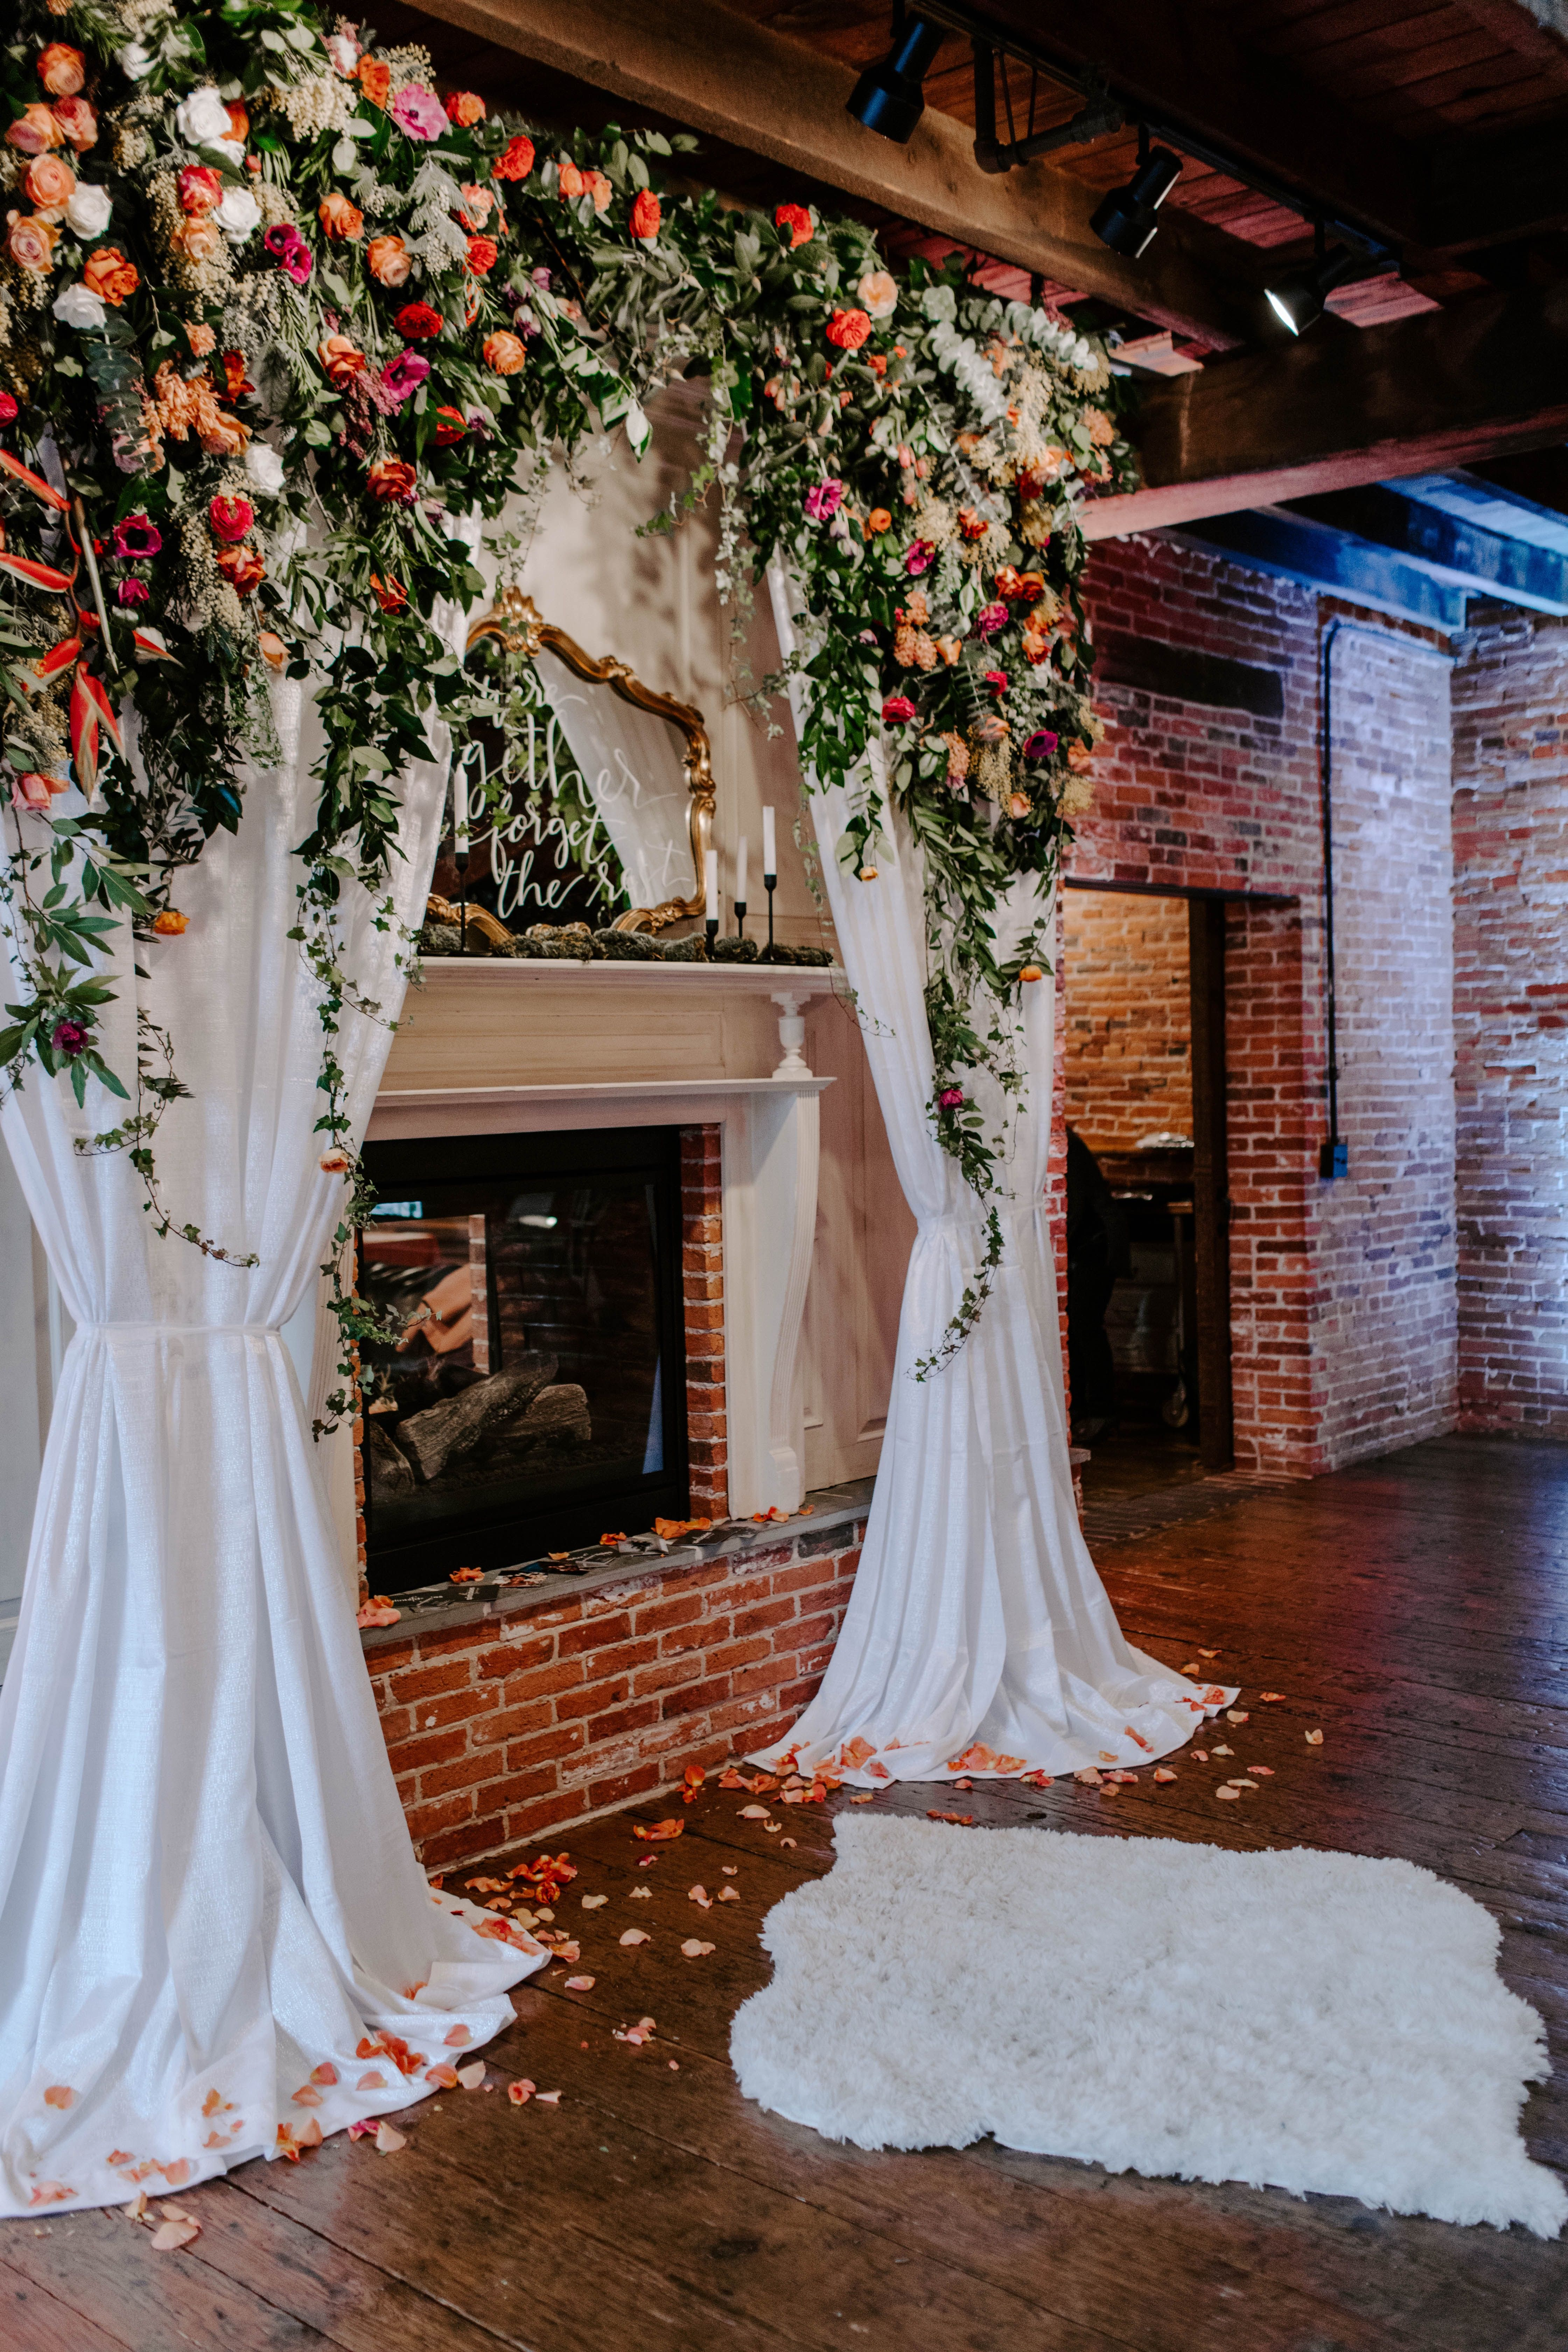 Wedding decorations house  Pin by The Booking House  Wedding and Event Venue in Central PA on